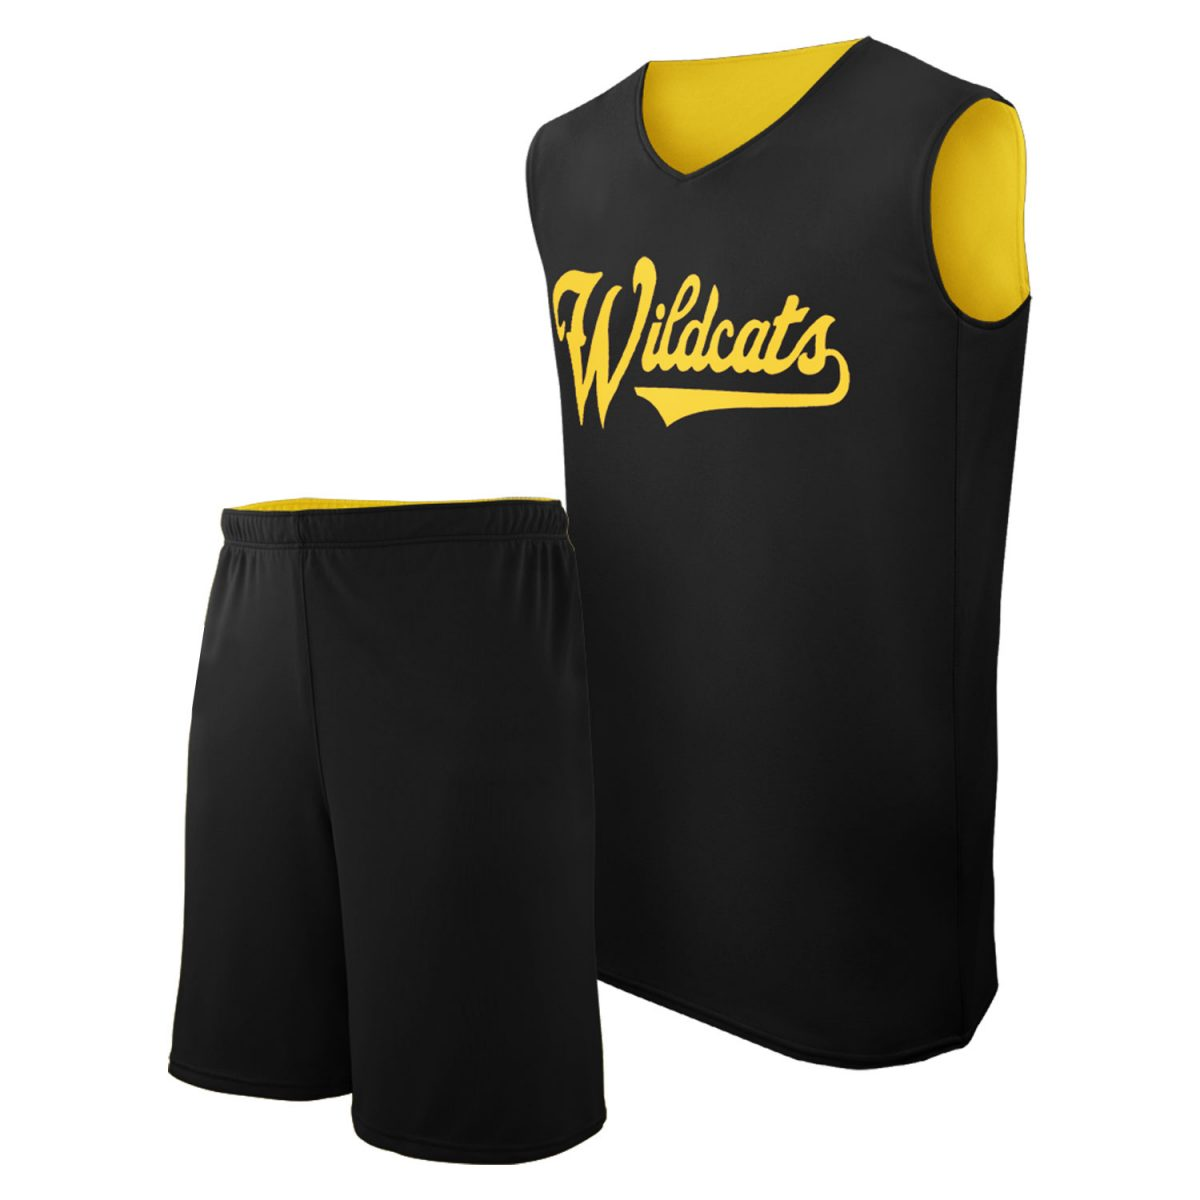 Boys Basketball Uniforms Manufacturers in Jalandhar in Algeria